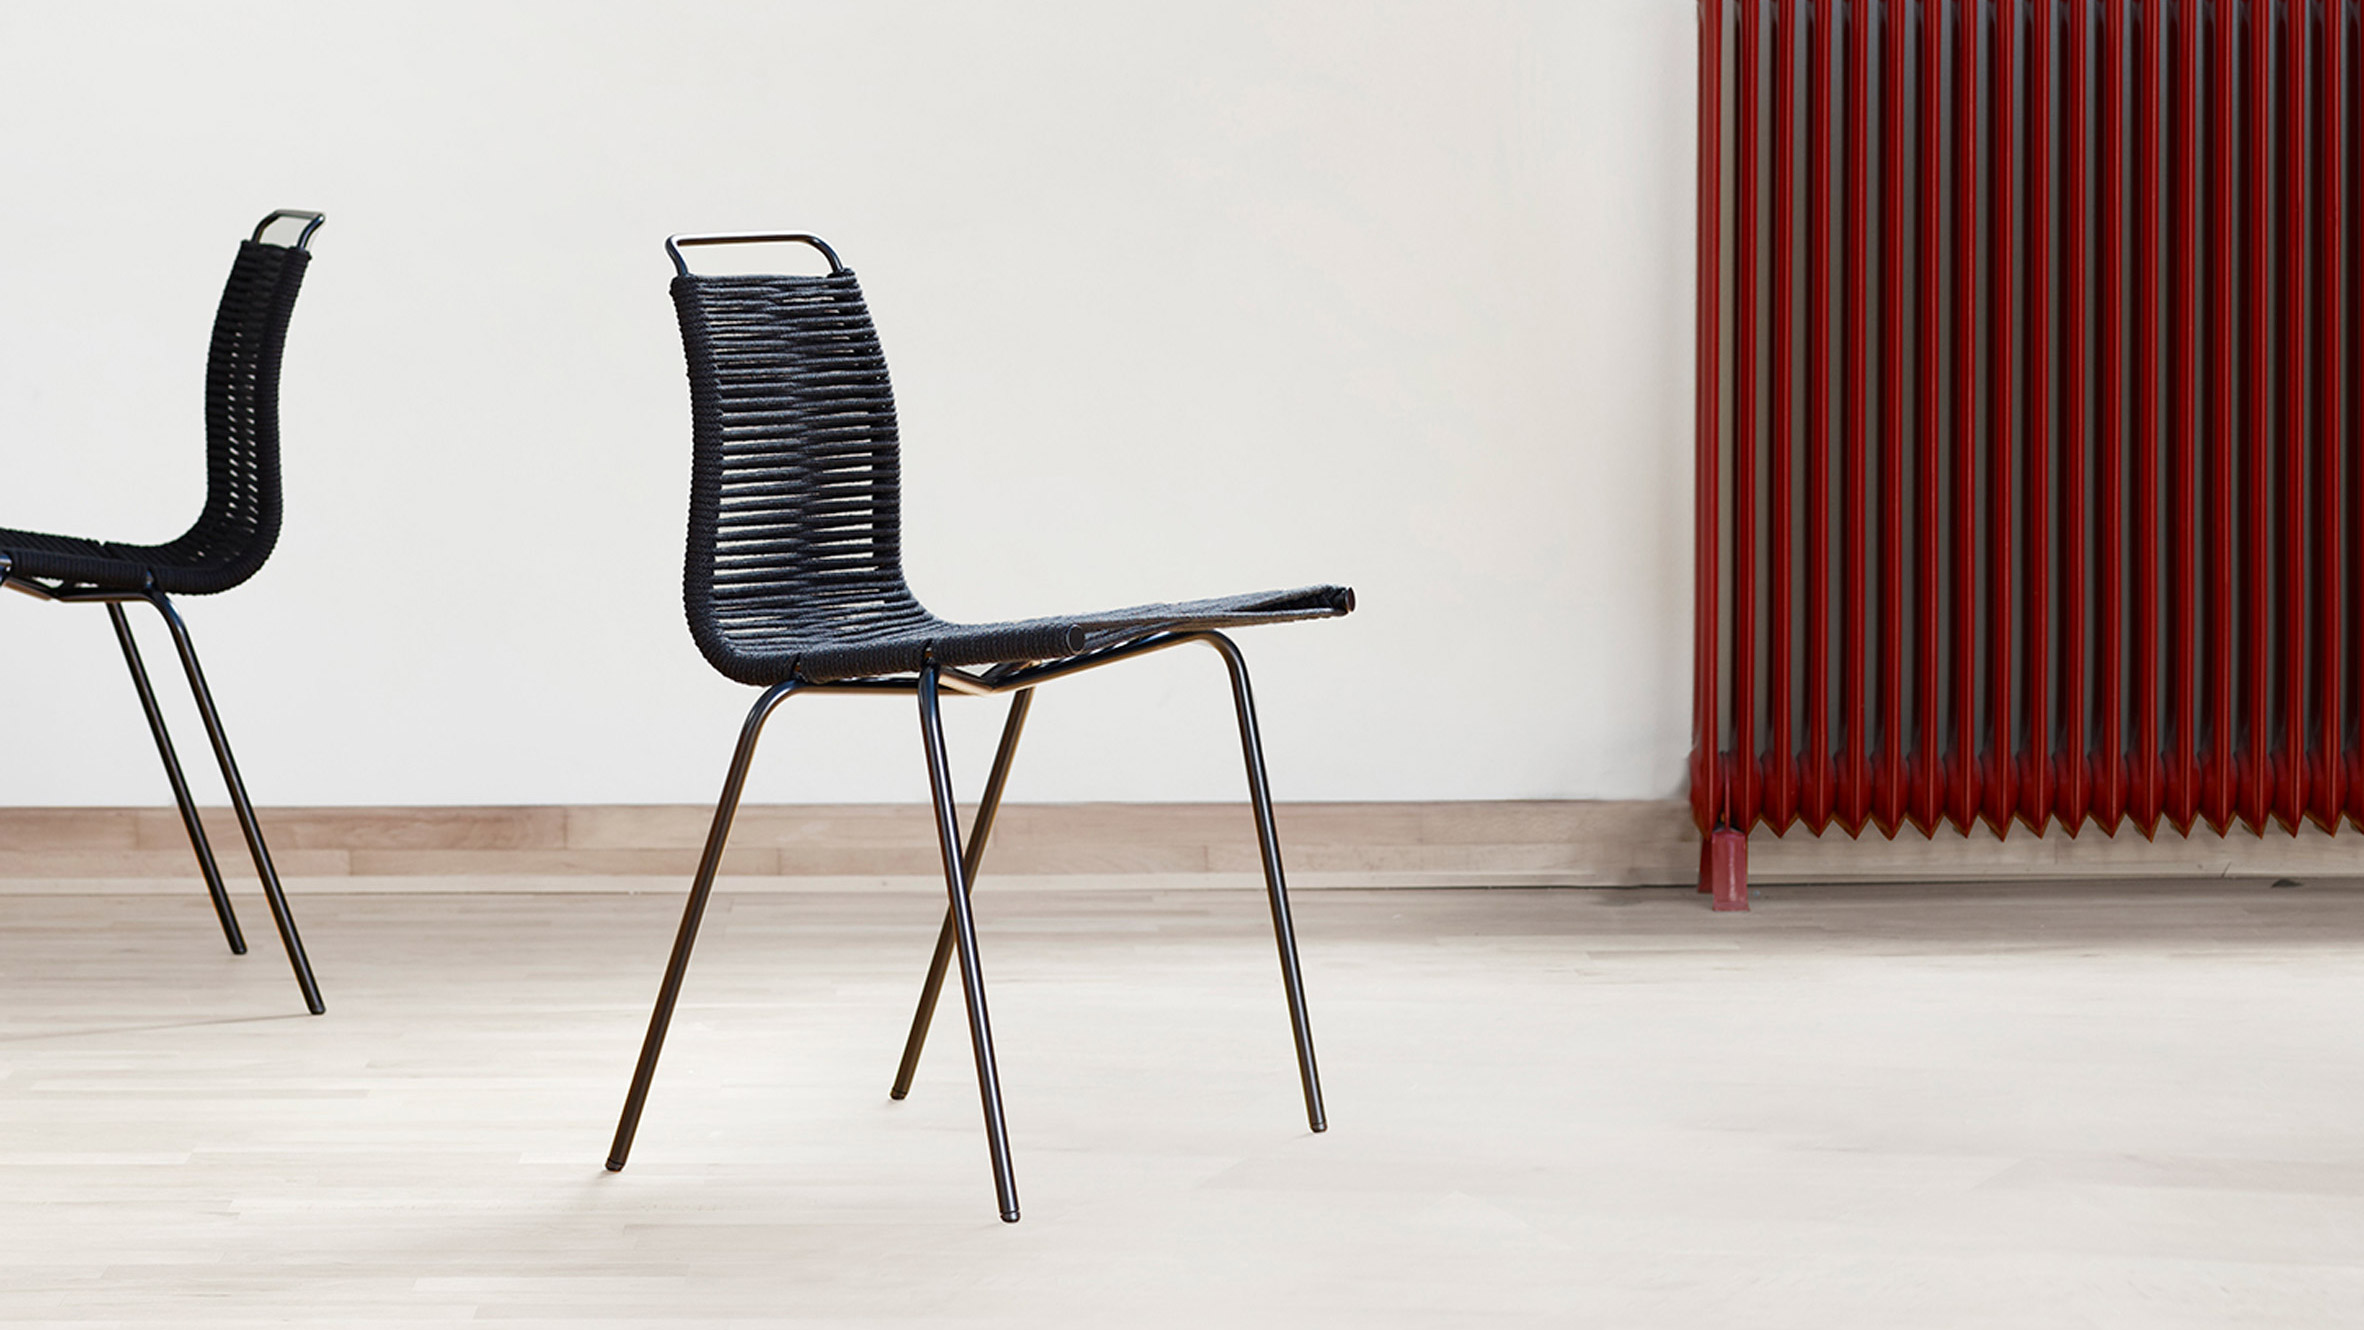 Carl Hansen & Son reissues Poul Kj¦rholm s PK1 dining chair